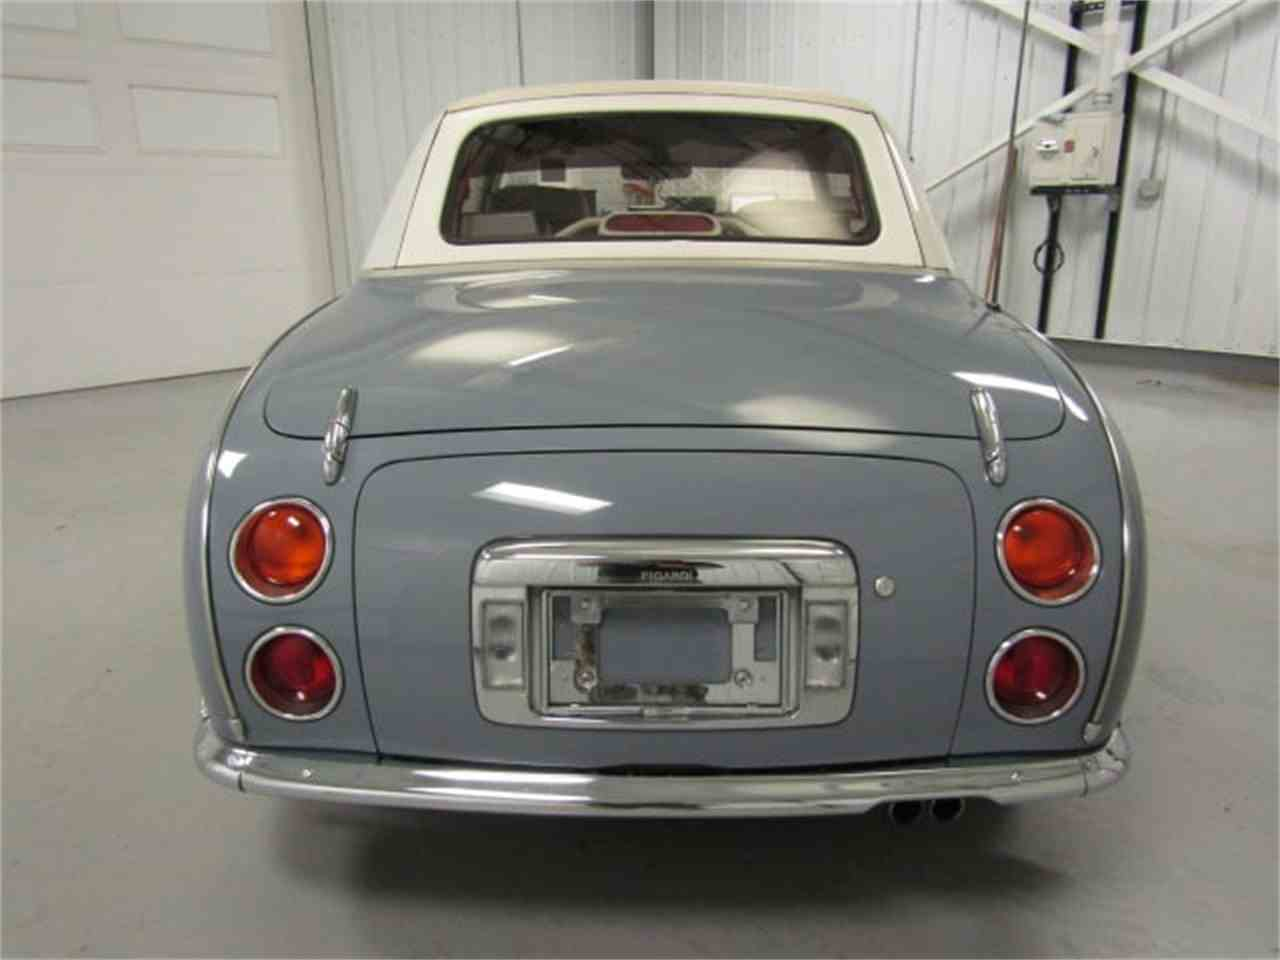 Large Picture of '91 Nissan Figaro located in Virginia - $17,900.00 Offered by Duncan Imports & Classic Cars - JL8M